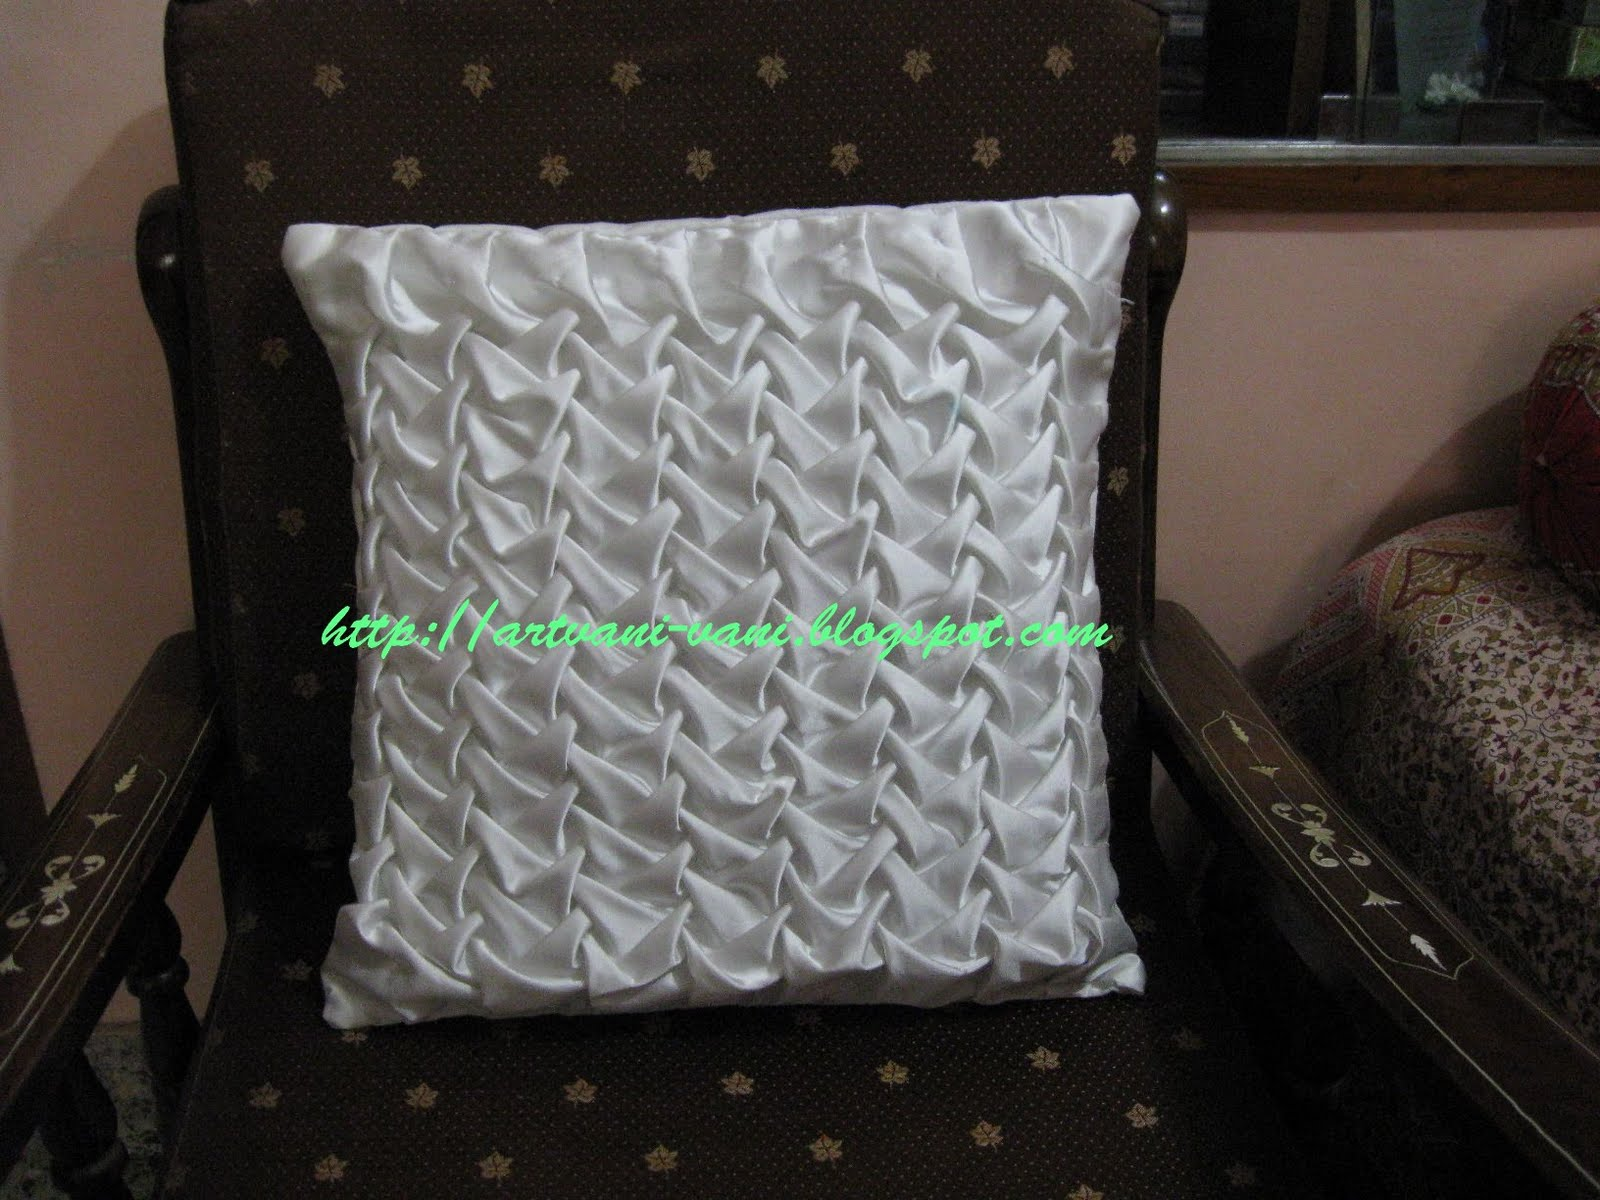 Vani's blog 2 : Canadian smocking by joining two points